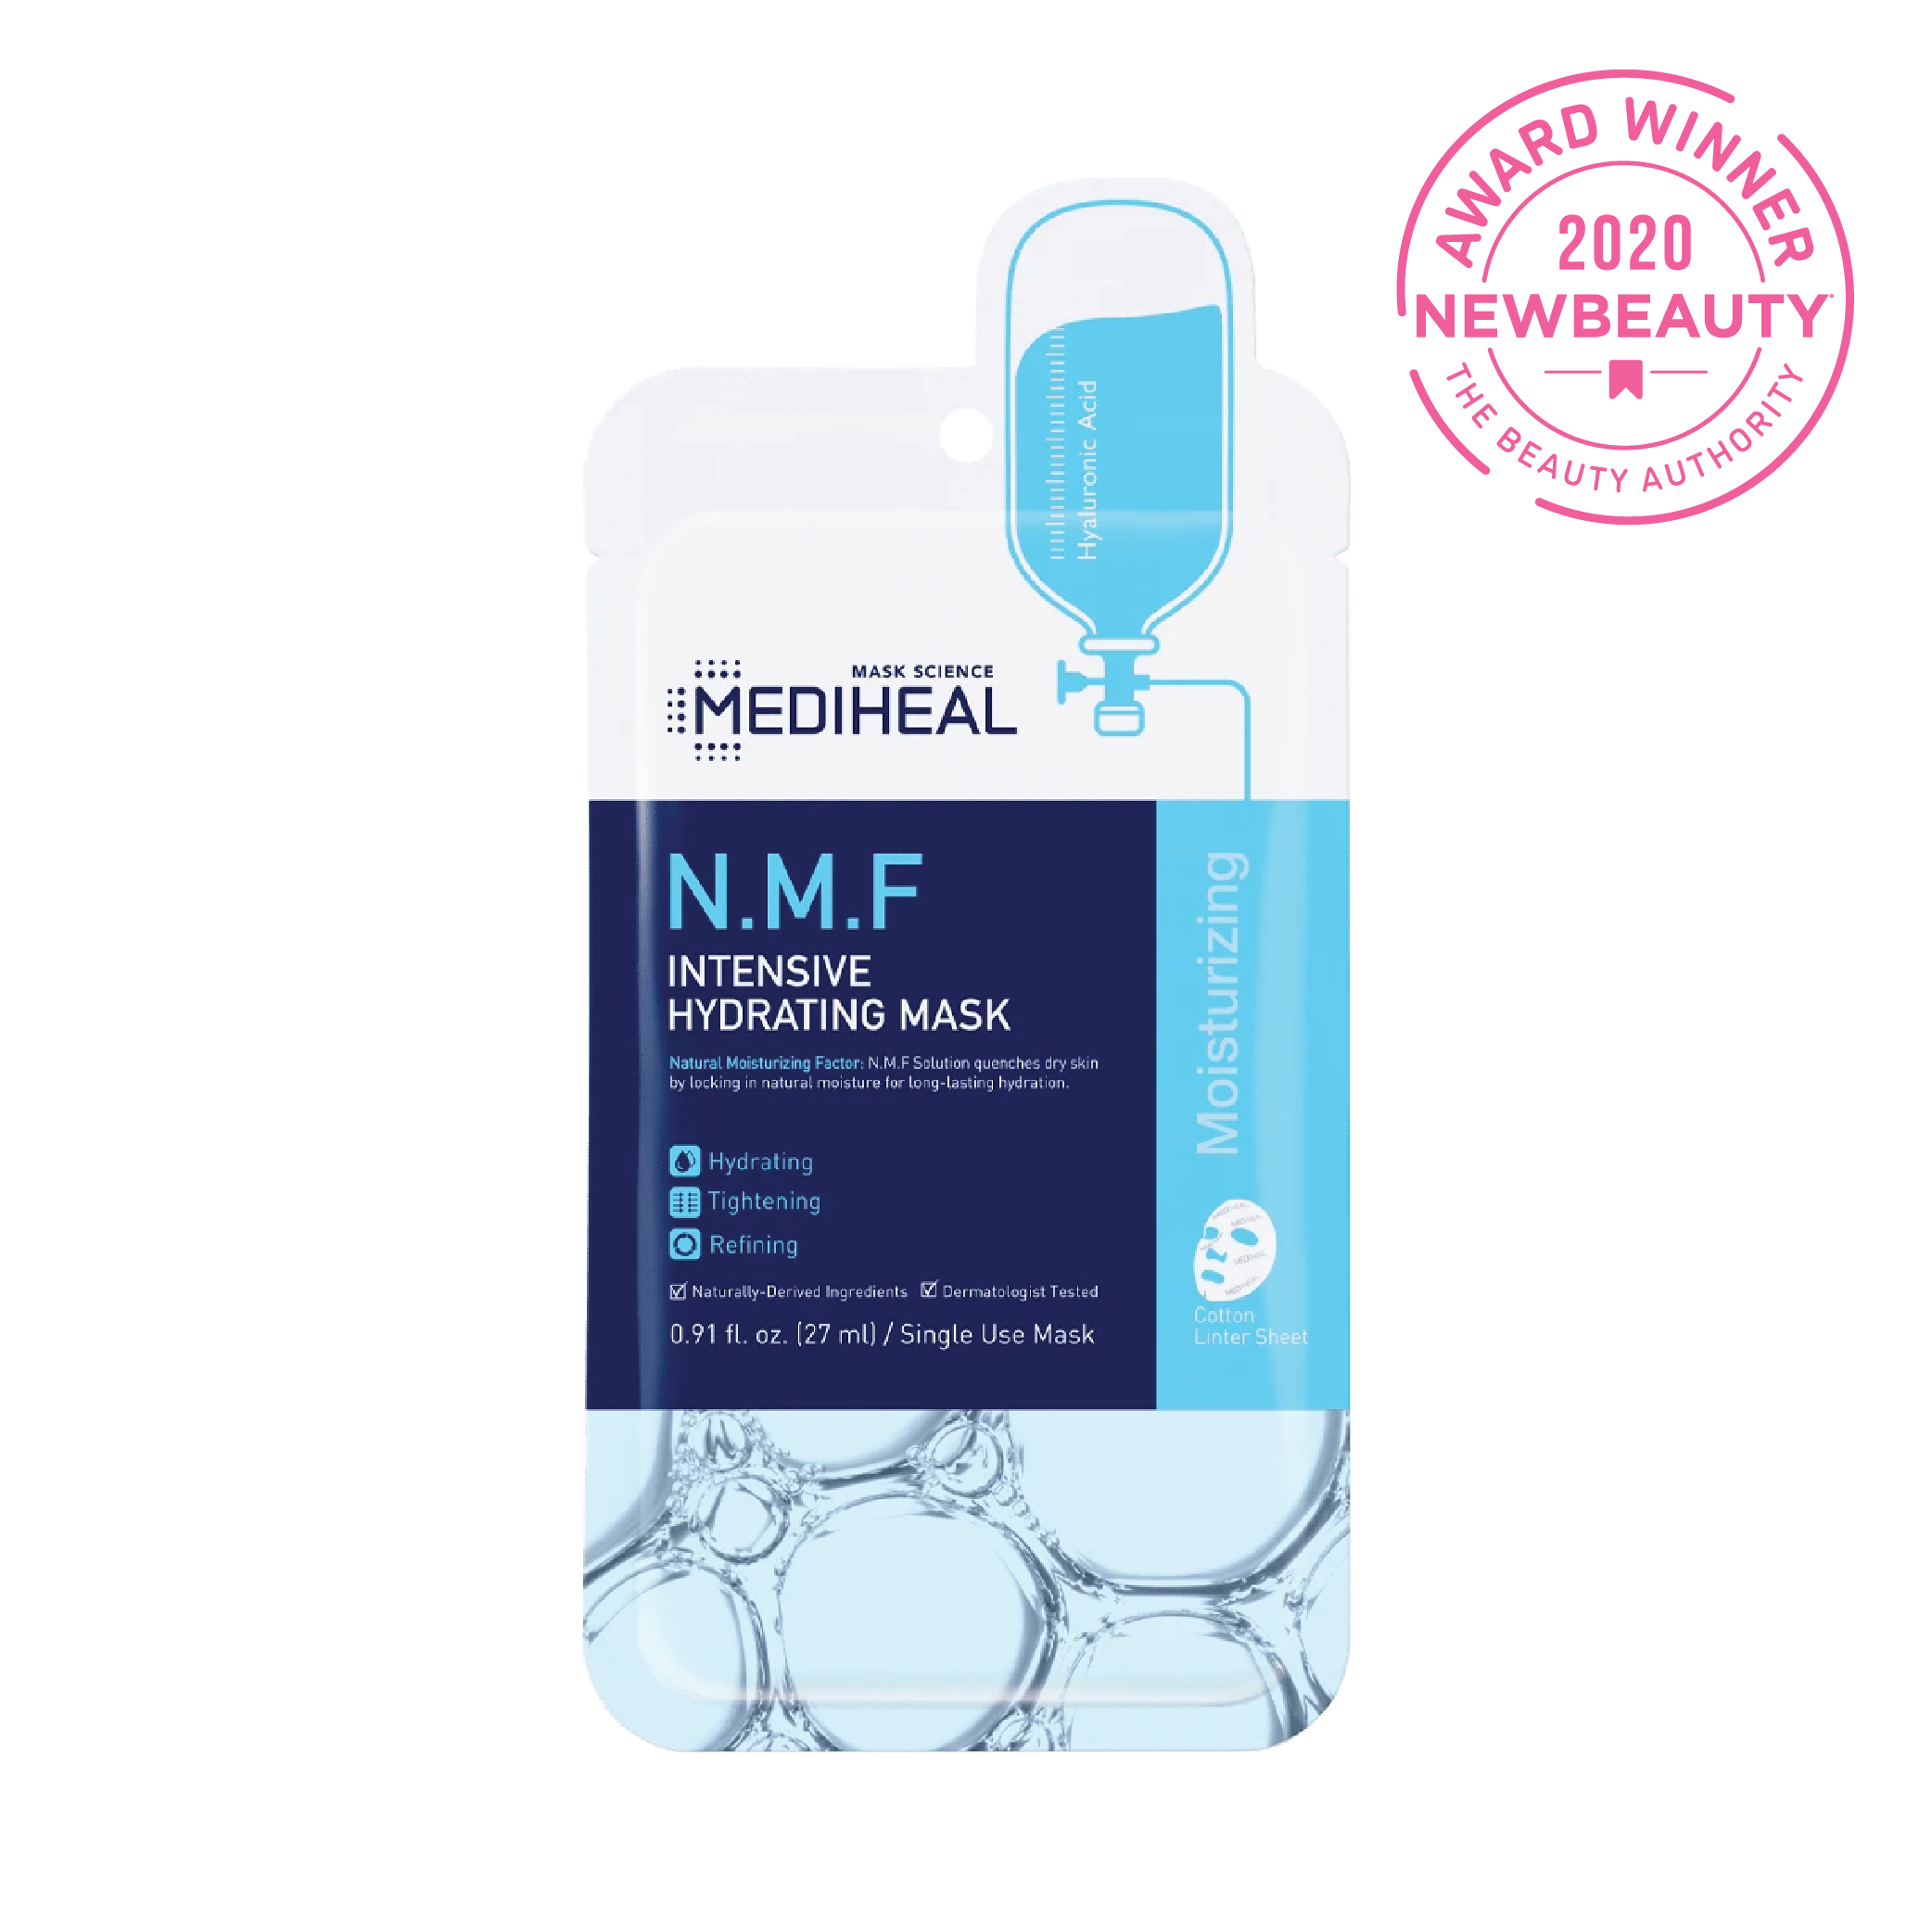 NMF Intensive Hydrating Mask IMG 02